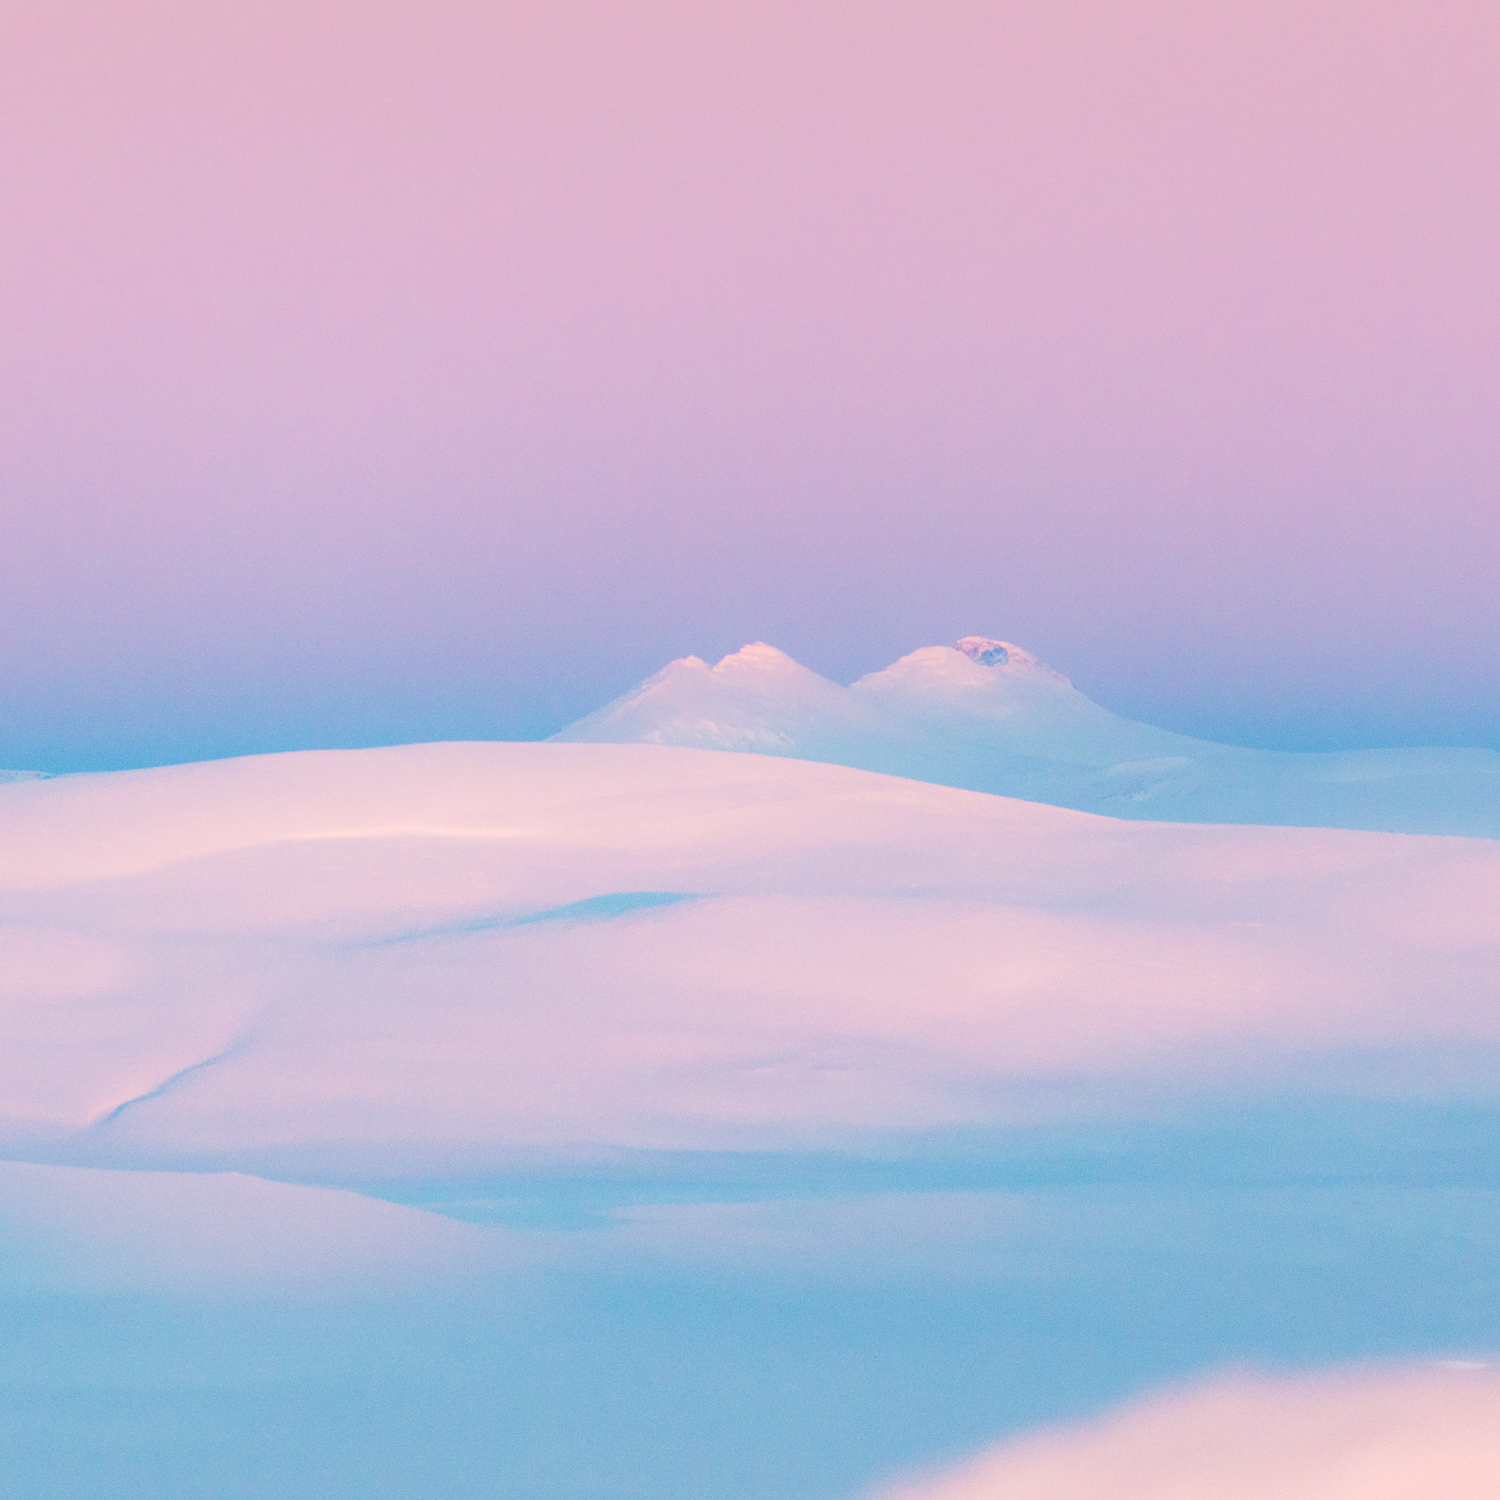 polar_night_pink_photography.jpg